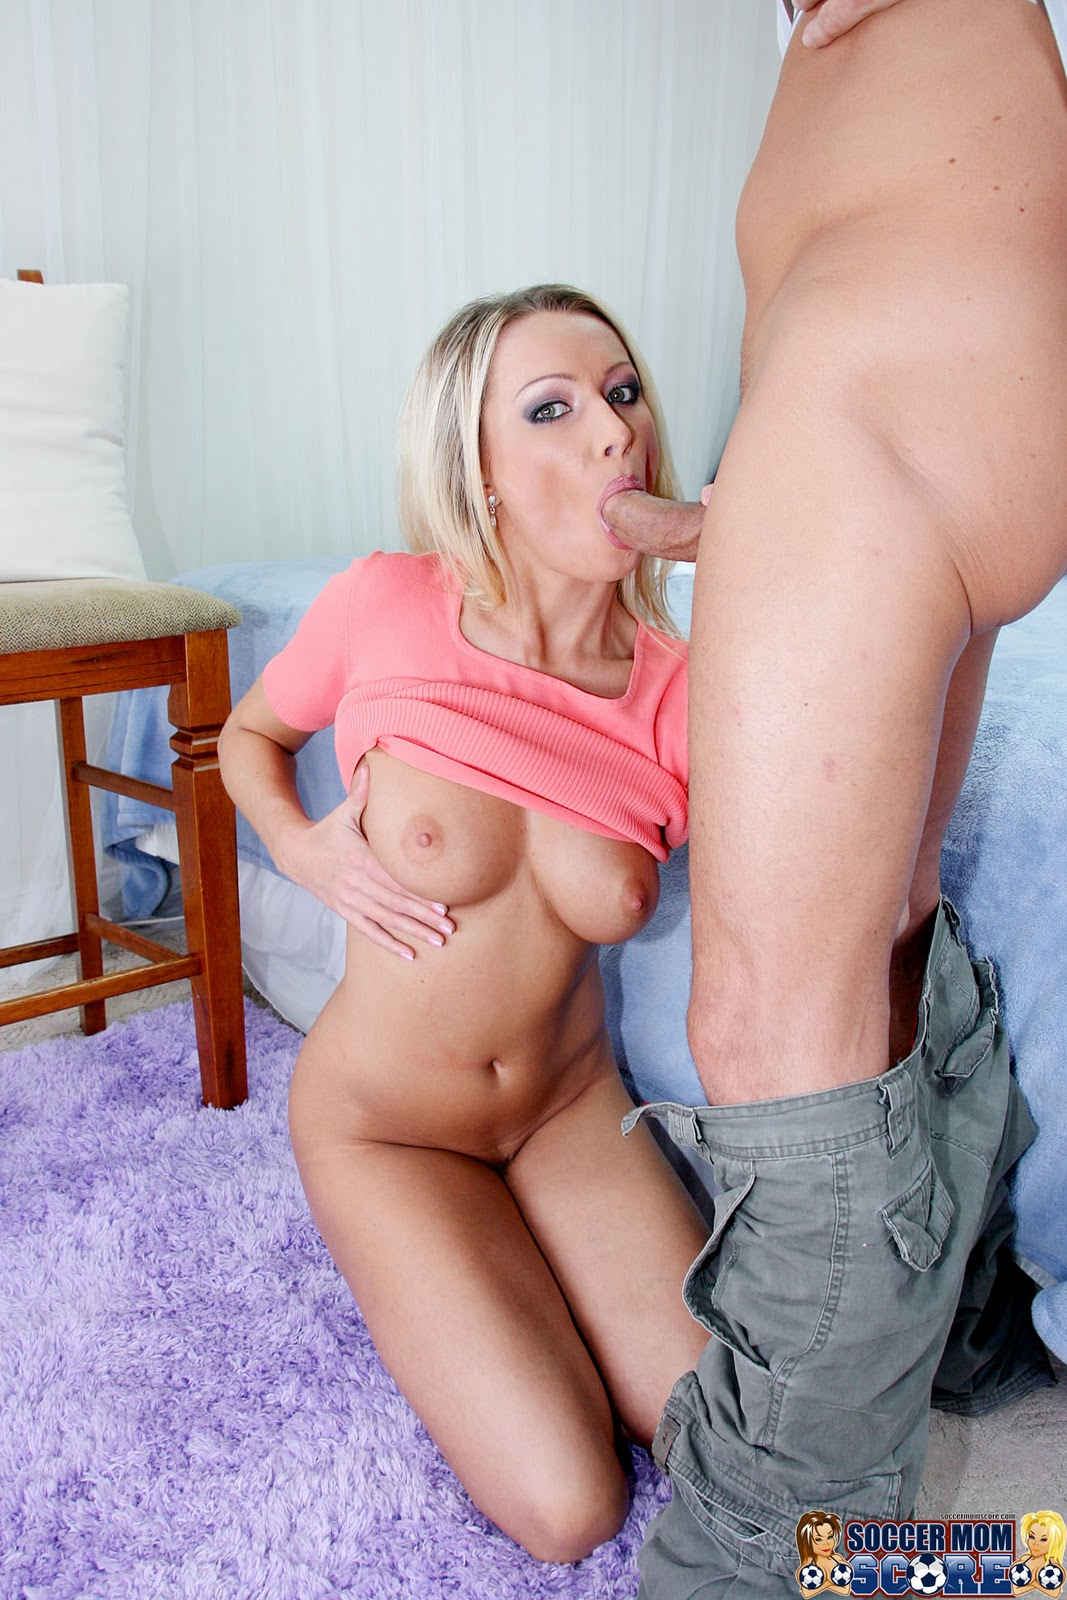 Xxx Beverly lynne hardcore free videos porn tubes